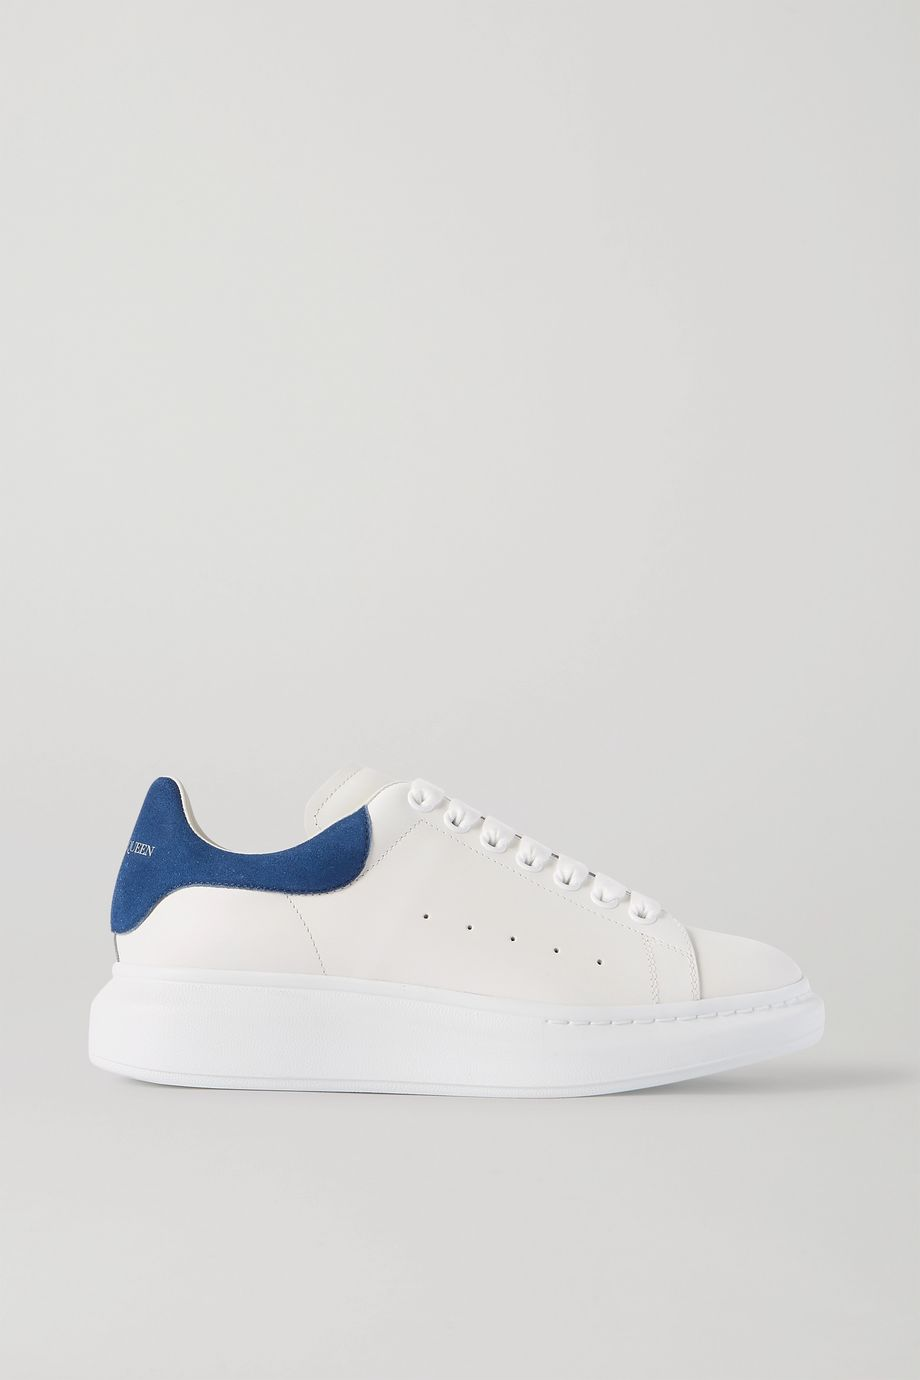 ALEXANDER MCQUEEN Two-tone suede-trimmed leather exaggerated-sole sneakers